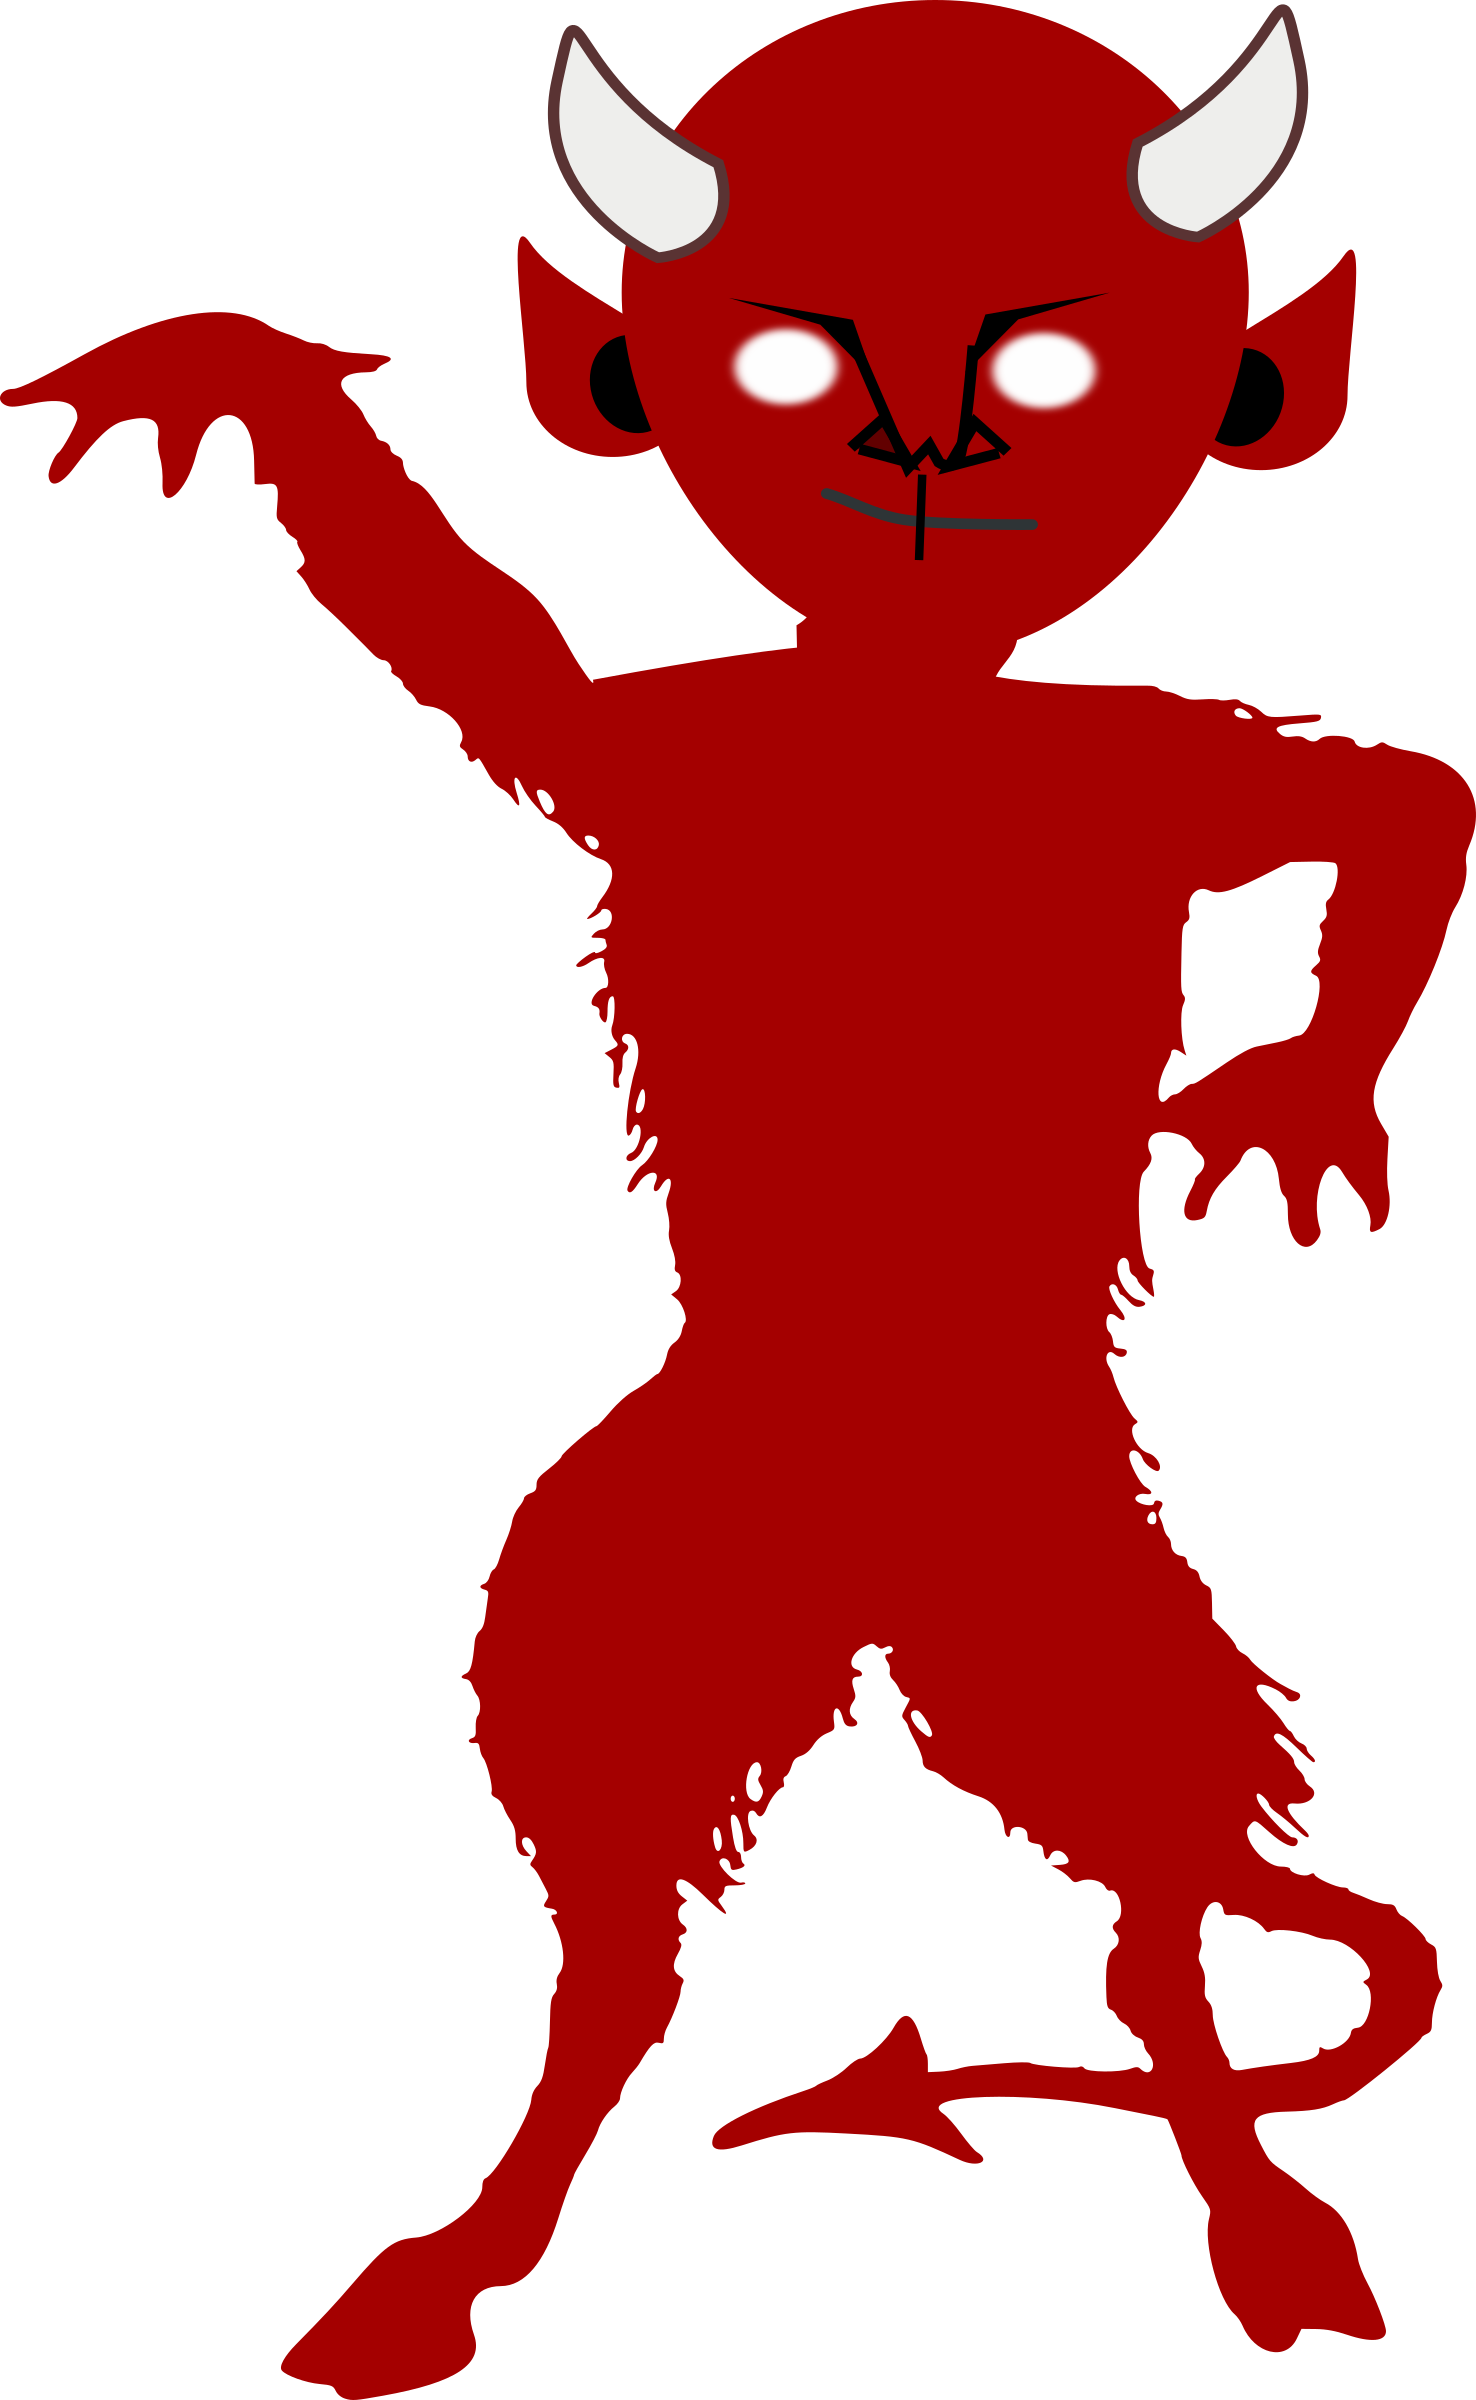 Demon silhouette at getdrawings. Horn clipart satanic